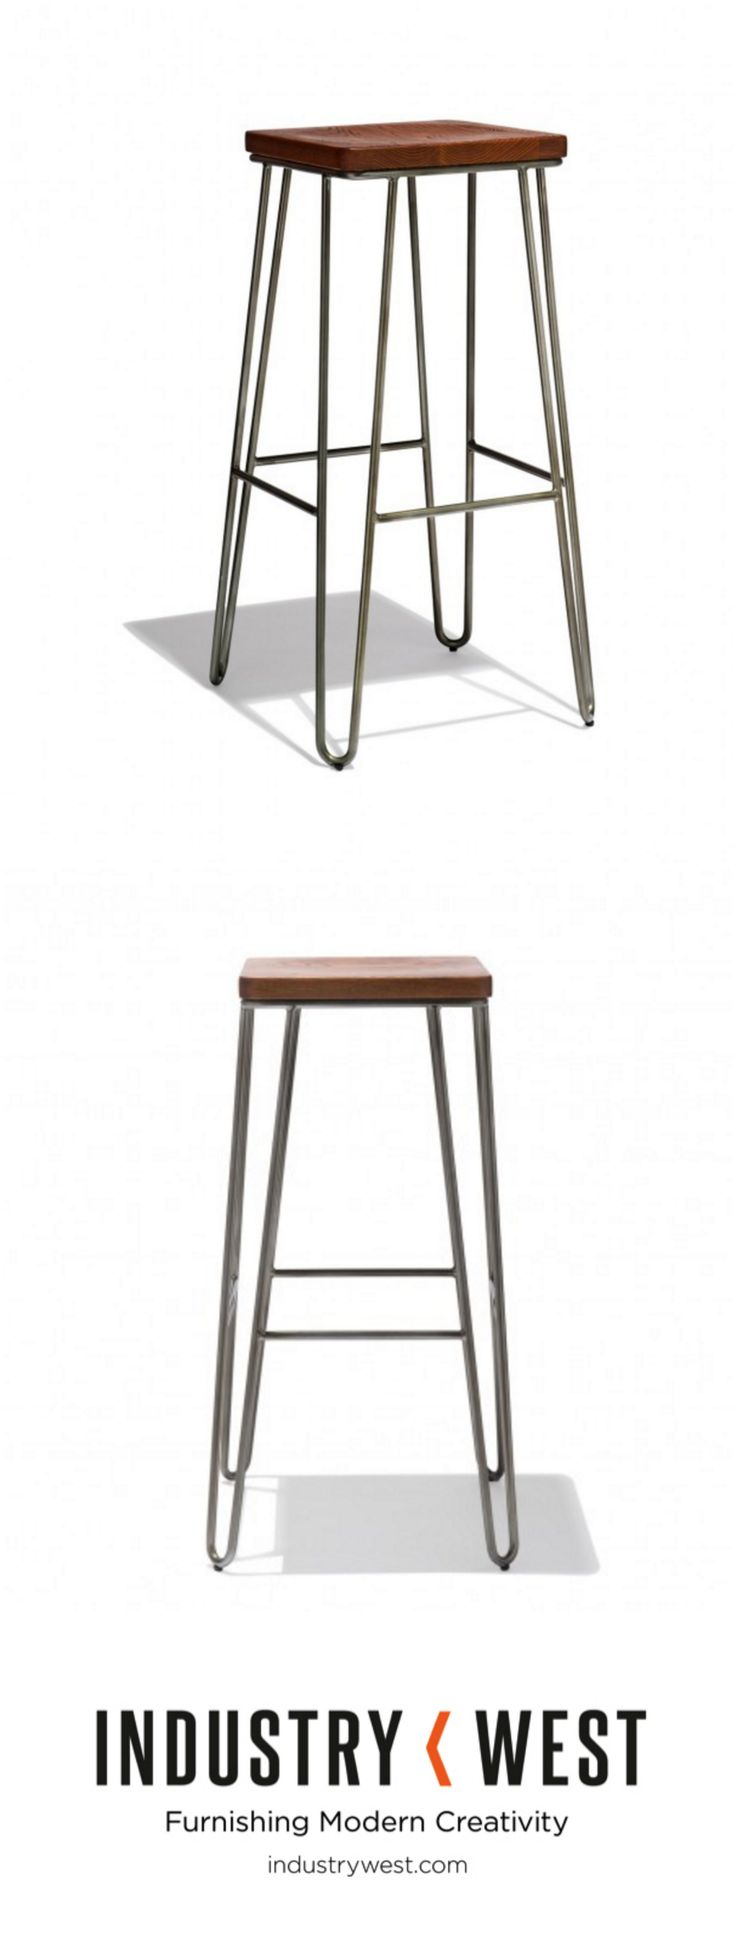 A new, backless companion to our Henry and Spoke Collections the Iris Bar Stool utilities style defining hairpin legs for a clean iconic look that stands the test of time.